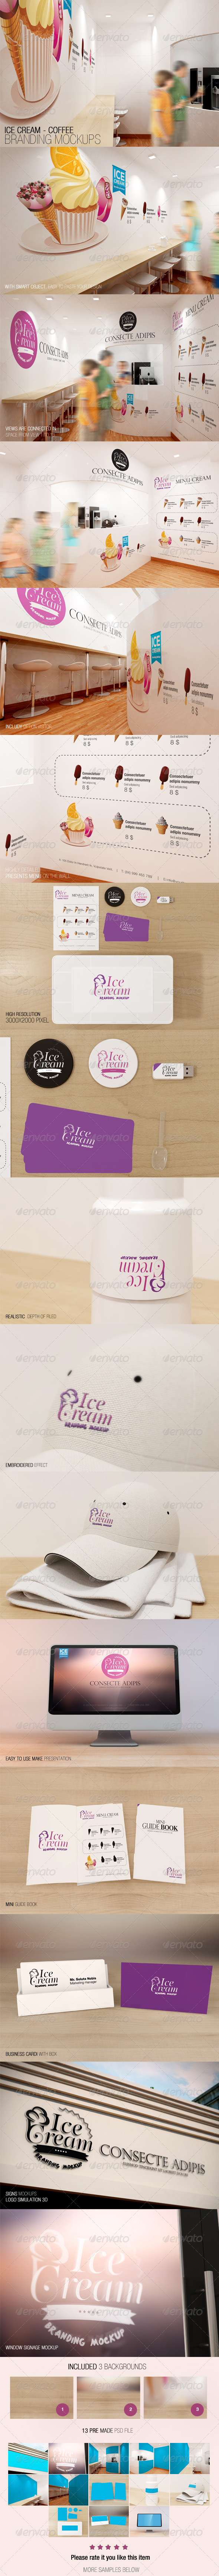 GraphicRiver Ice Cream Coffee Branding Mockups 7228959